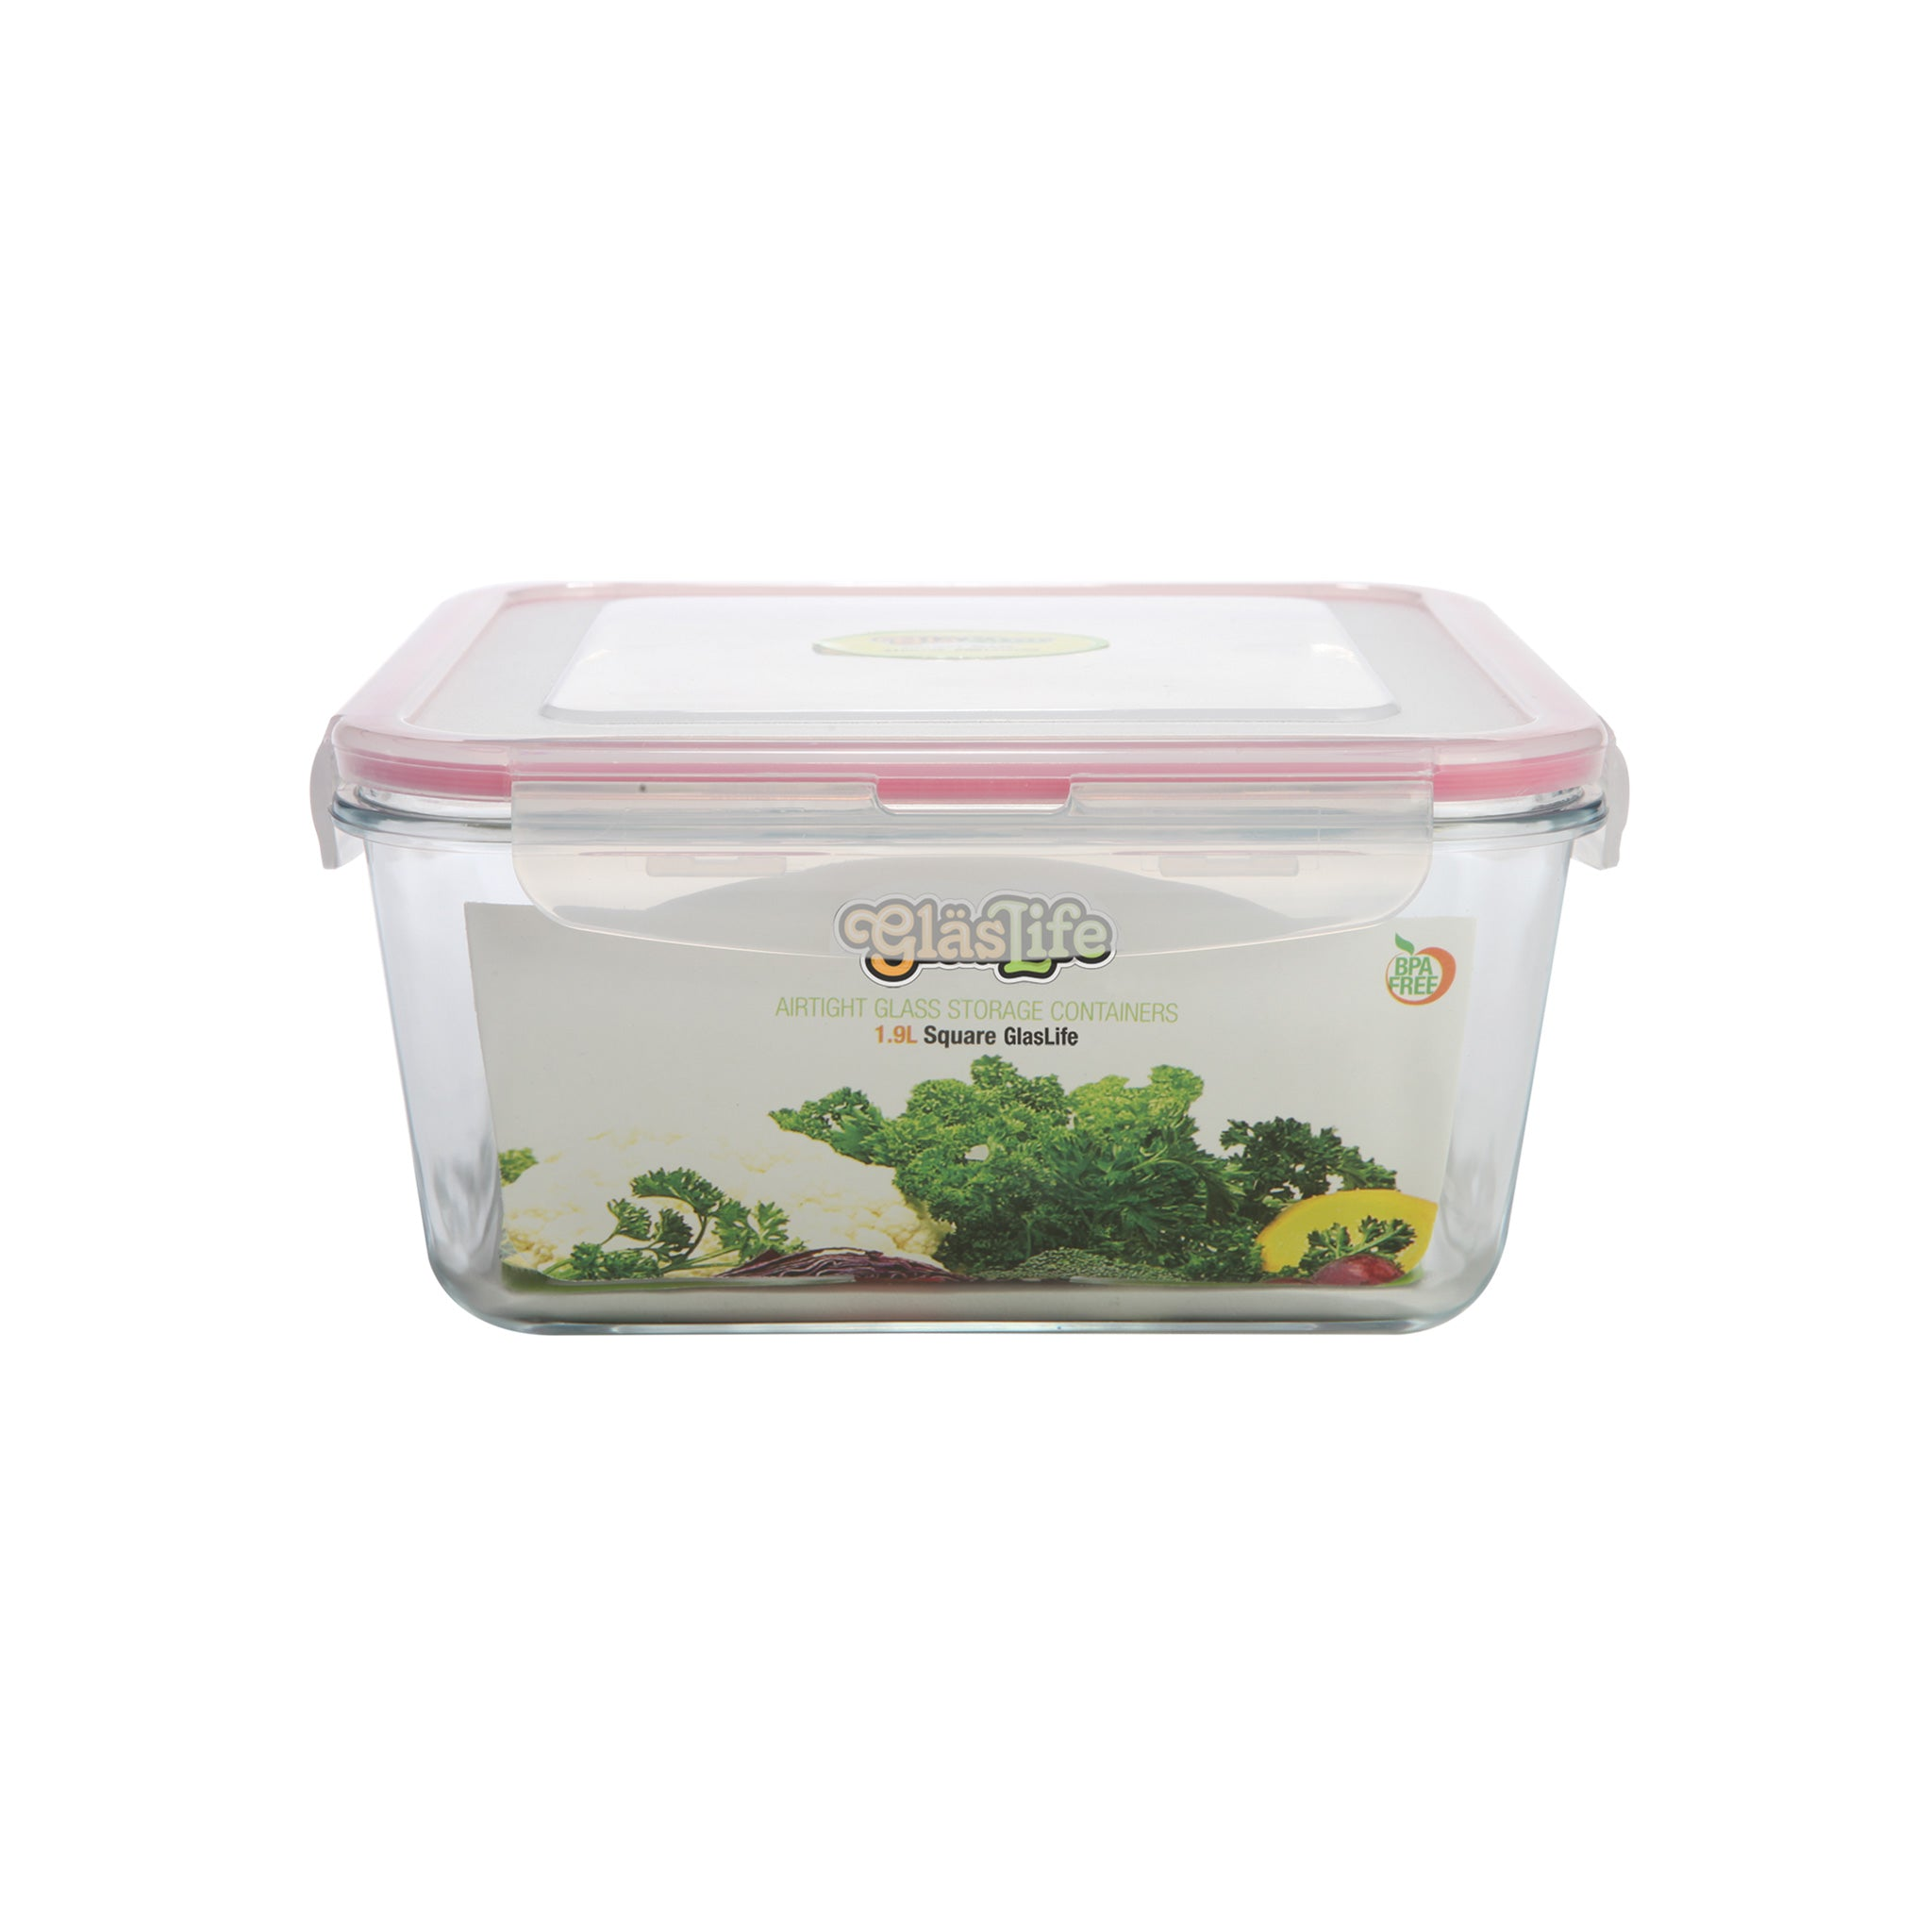 GlasLife® Air-Tight Glass Storage Container - Square  GLS10 Medium 34 oz / 1.0 L